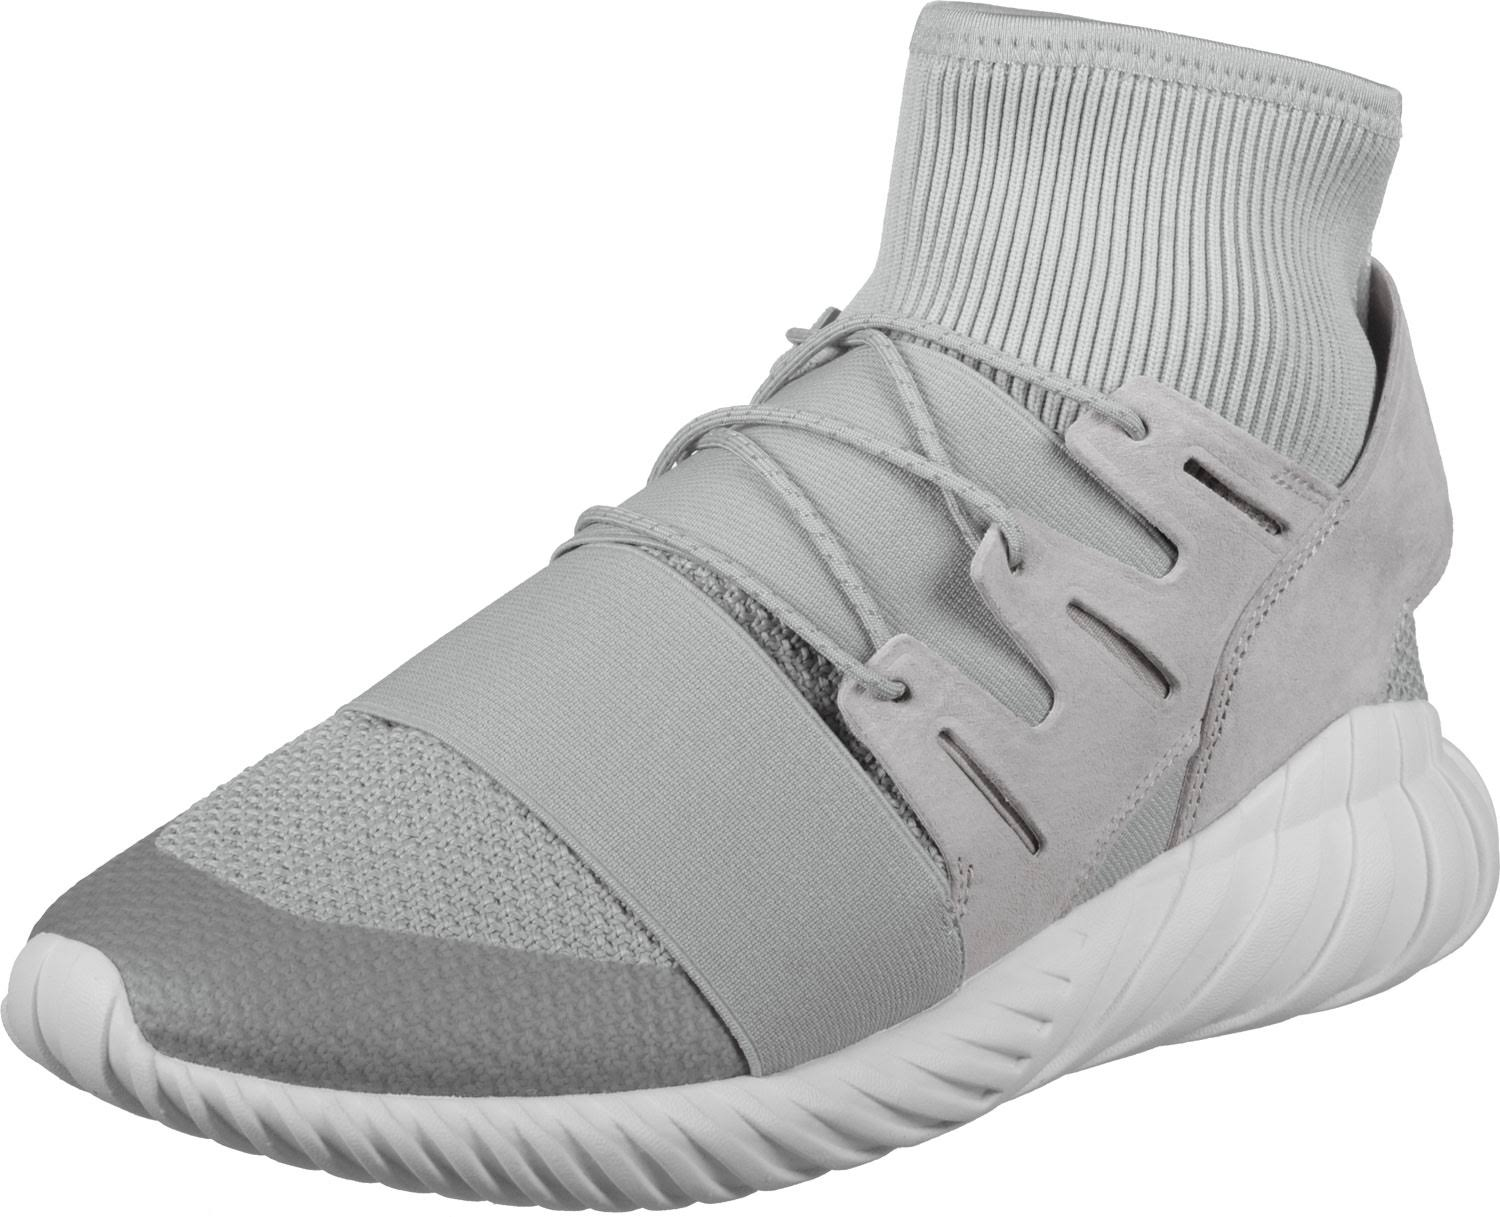 adidas Tubular Doom Winter shoes Men grey Gr.46,0 EU